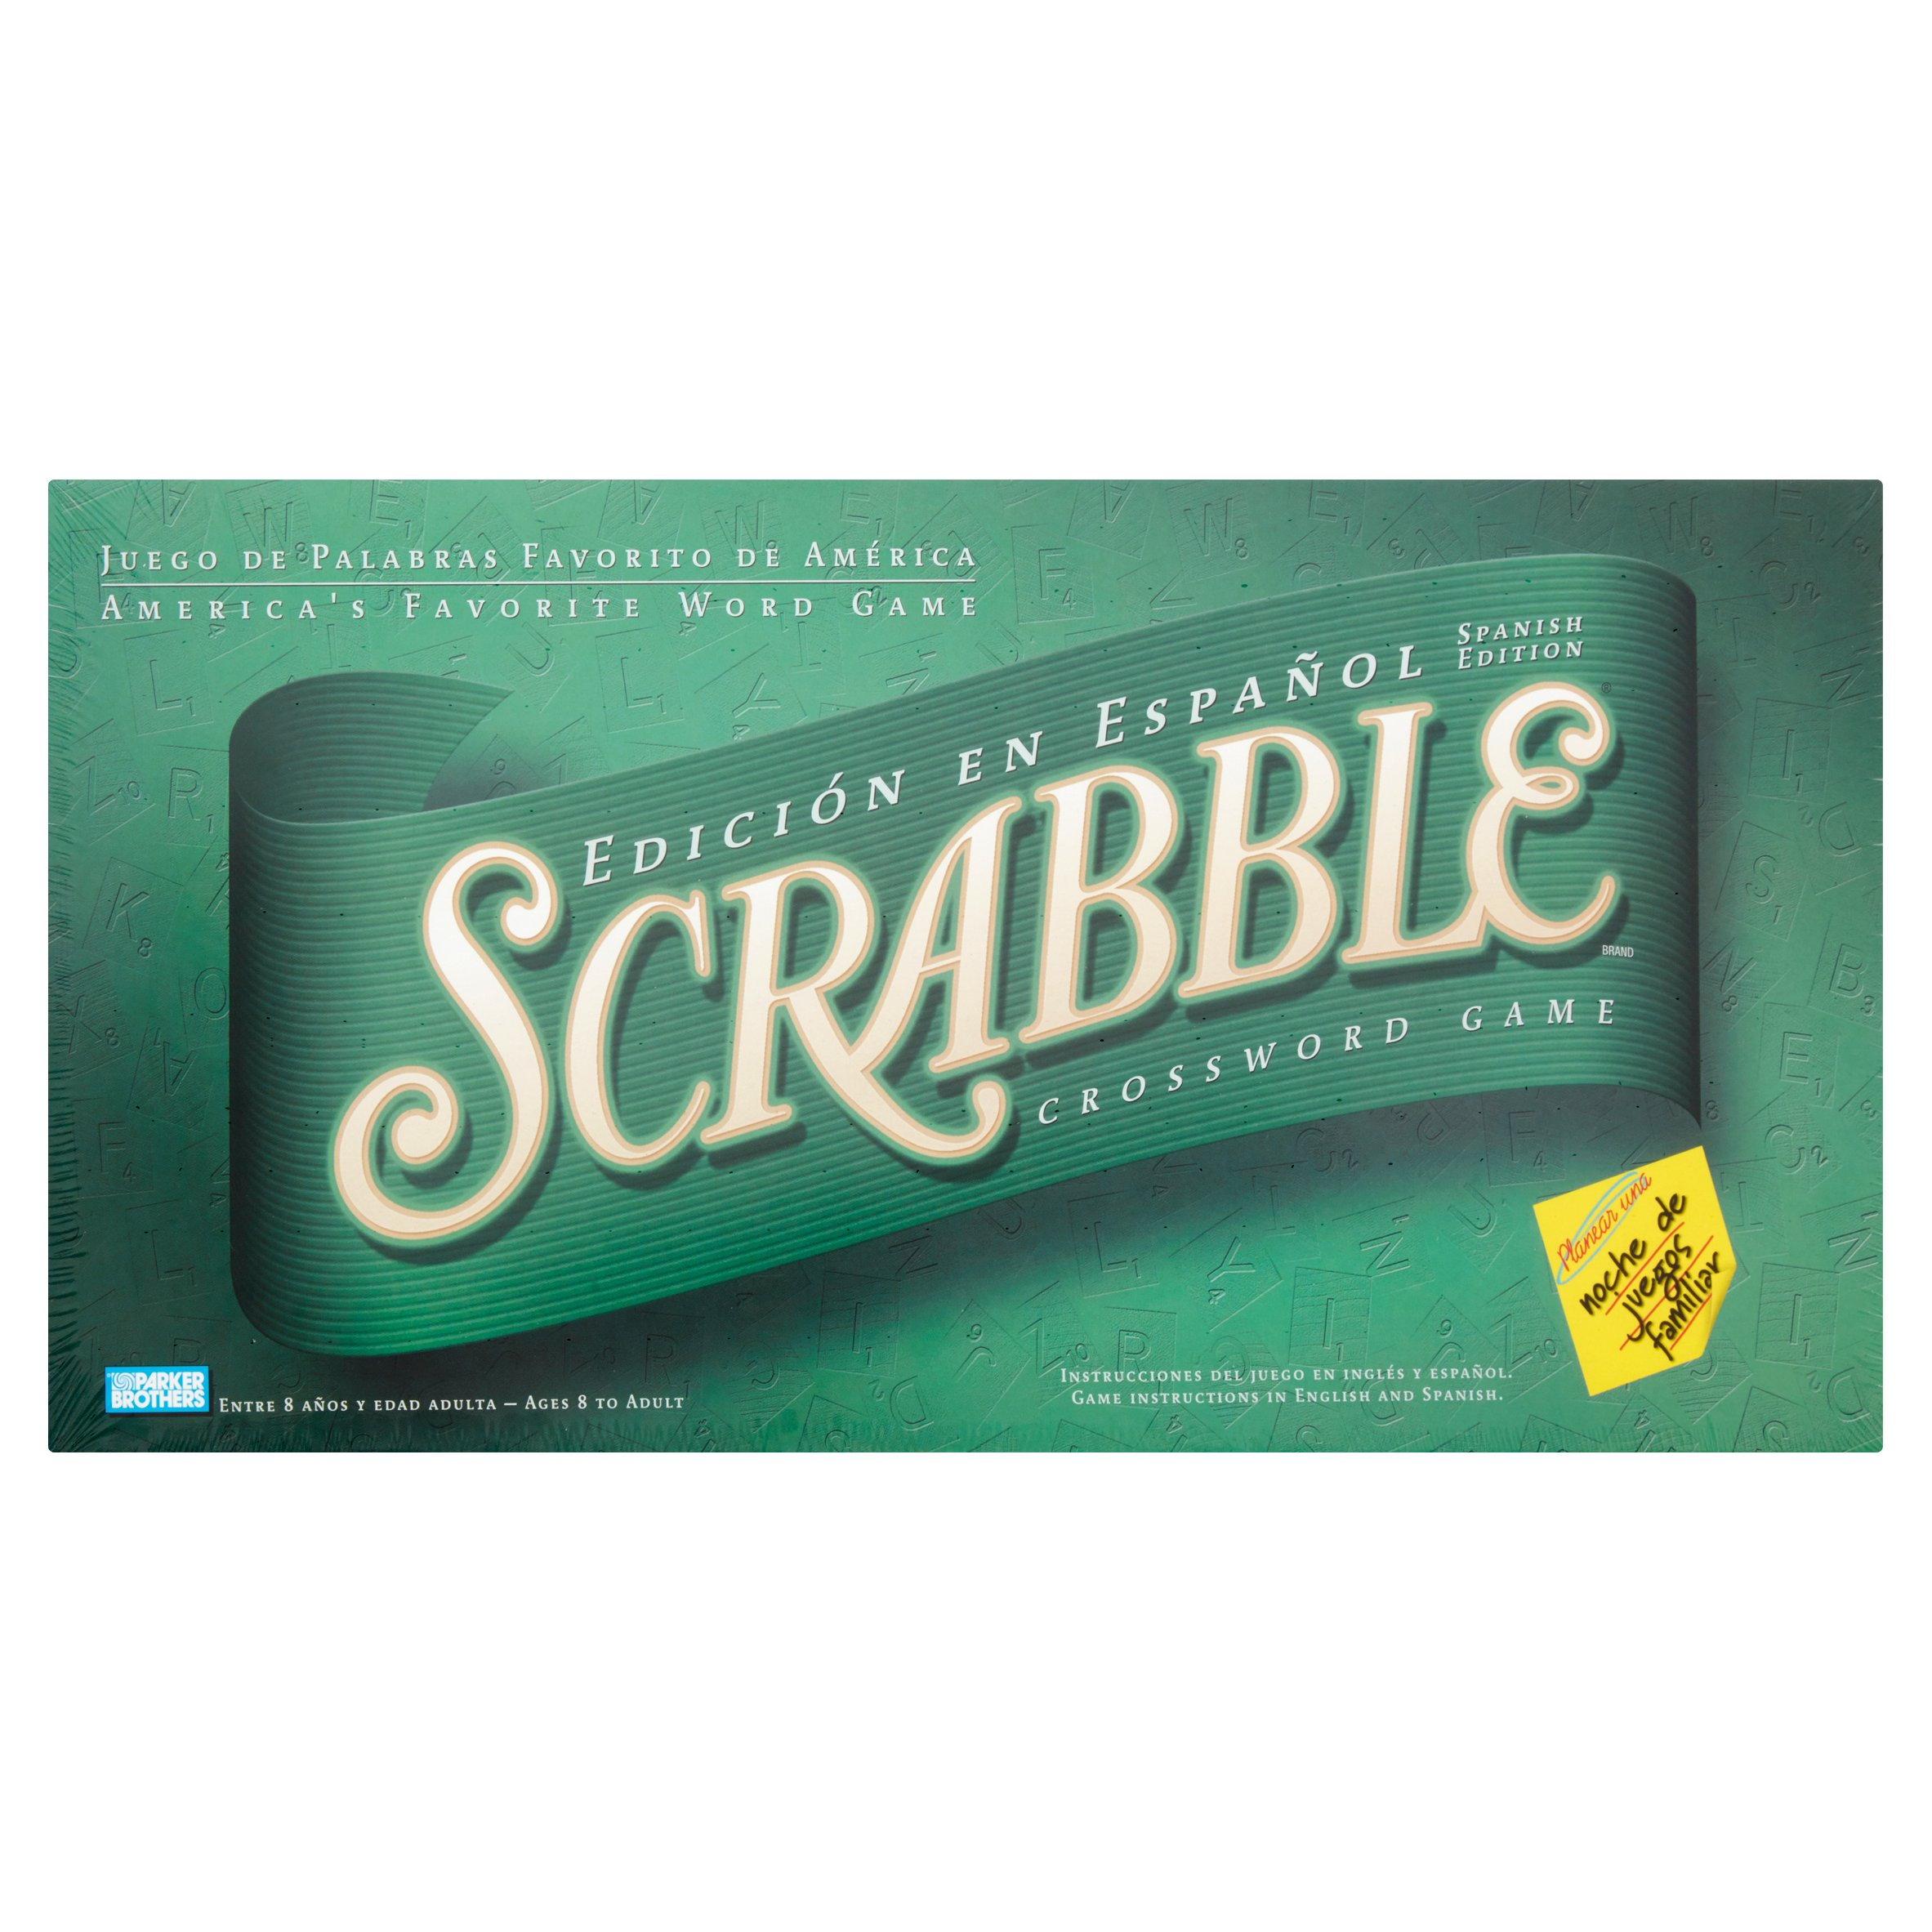 Scrabble Crossword Game Spanish Edition